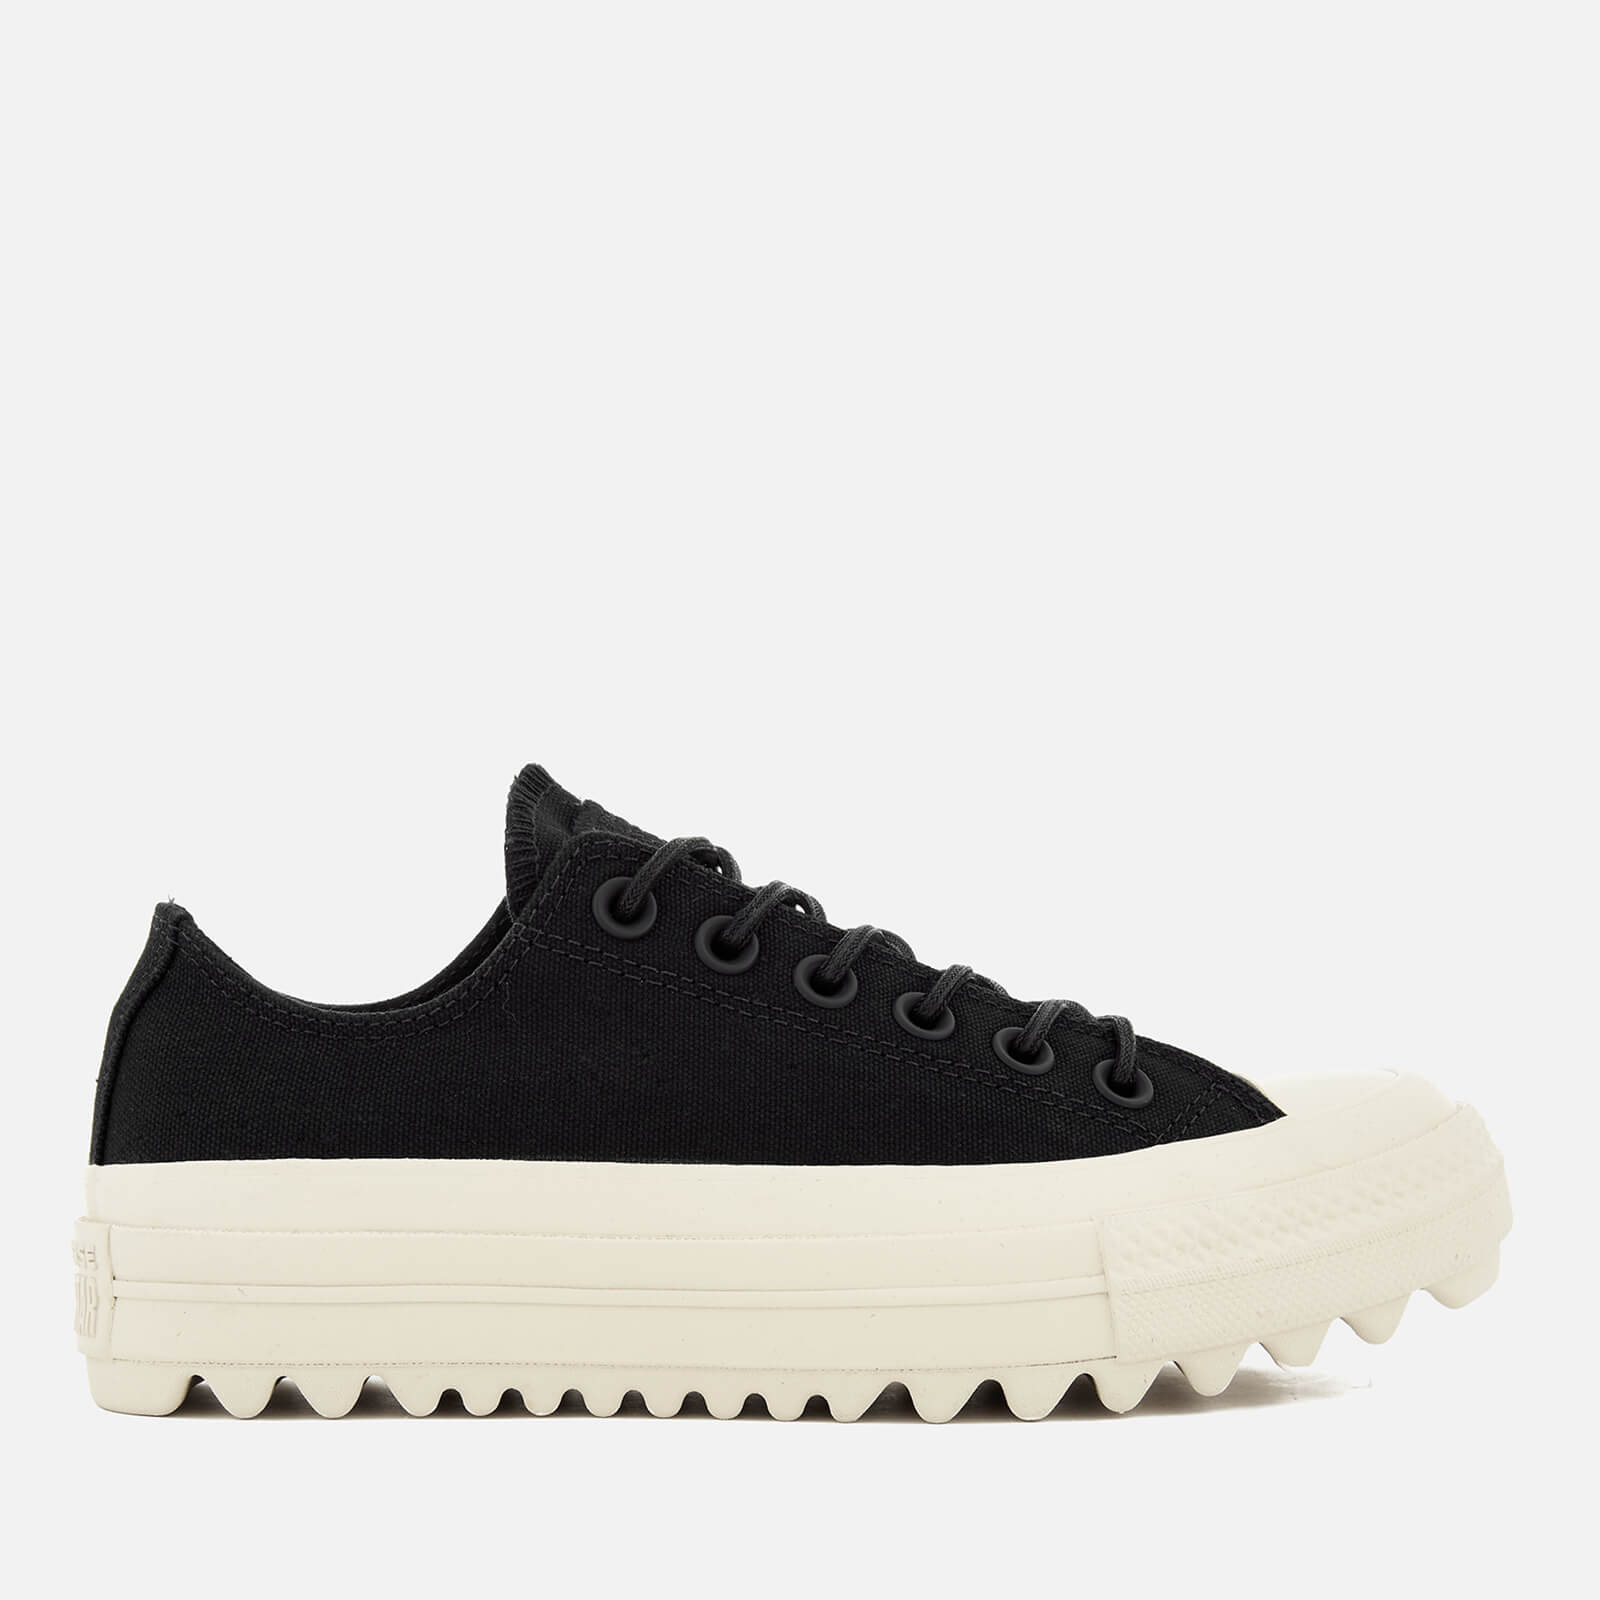 Converse CHUCK TAYLOR ALL STAR LIFT RIPPLE Trainers Women